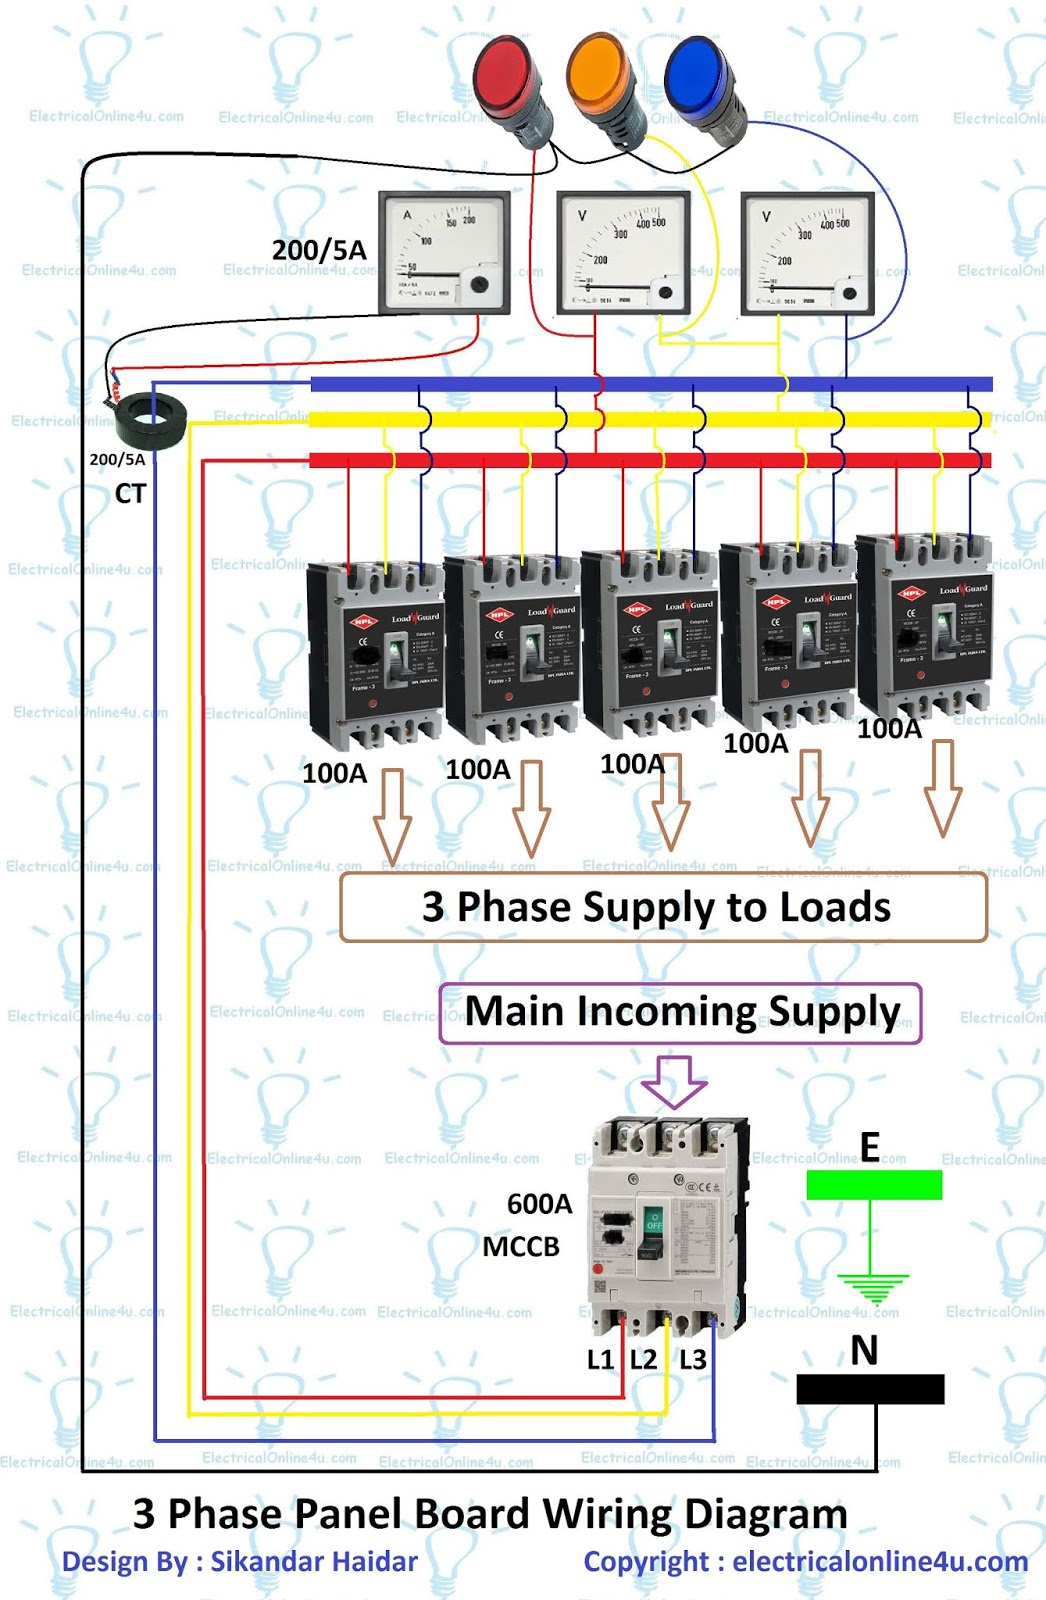 3 Phase Panel Board Wiring Diagram - Distribution Board ...